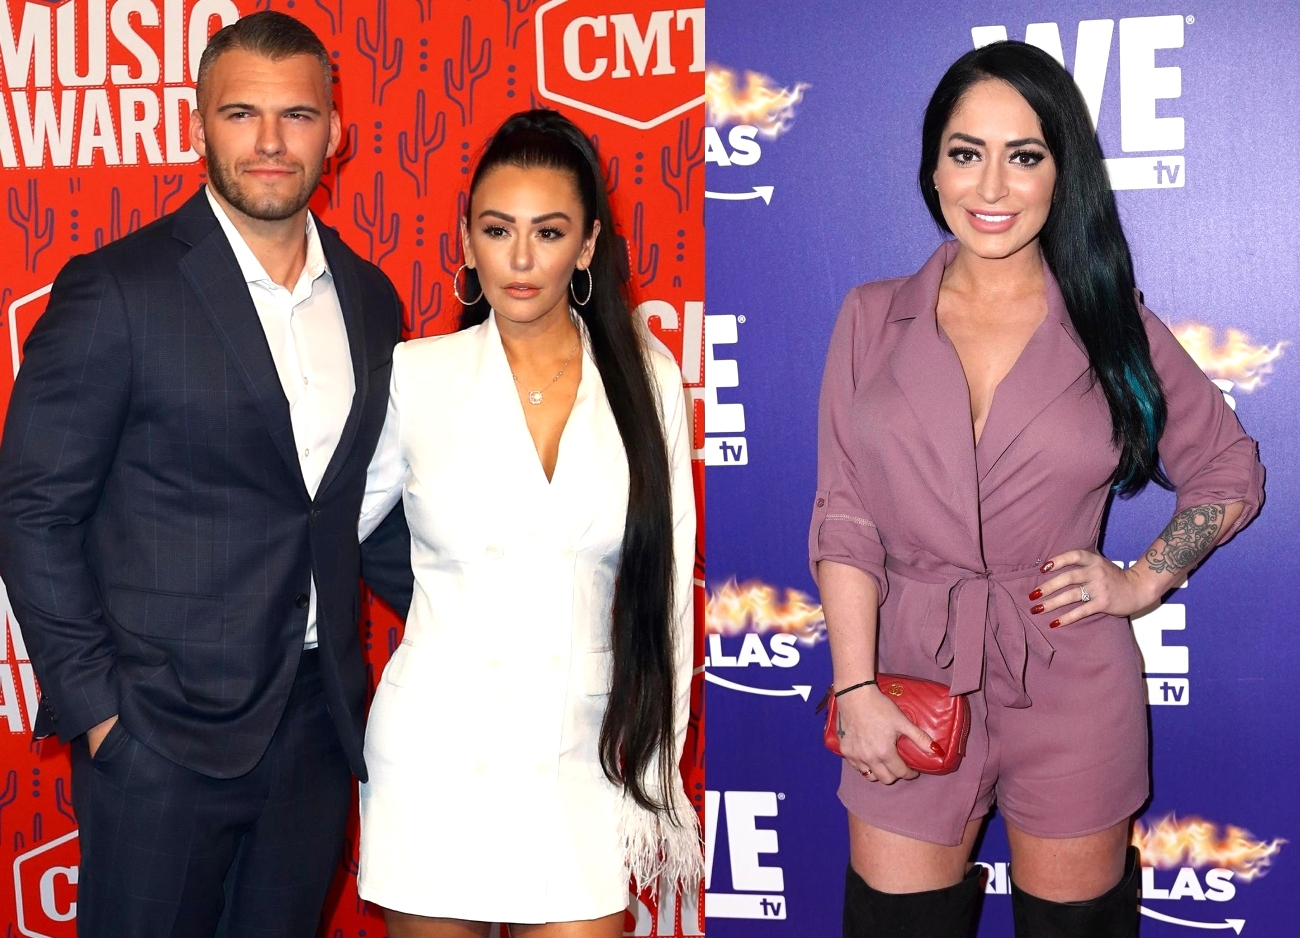 "Jersey Shore's Jenni 'JWoww' Farley Slams Angelina Pivarnick as an ""Idiot"" and Reconciles With Boyfriend Zack Carpinello Days After Dumping Him For Flirting With Angelina"